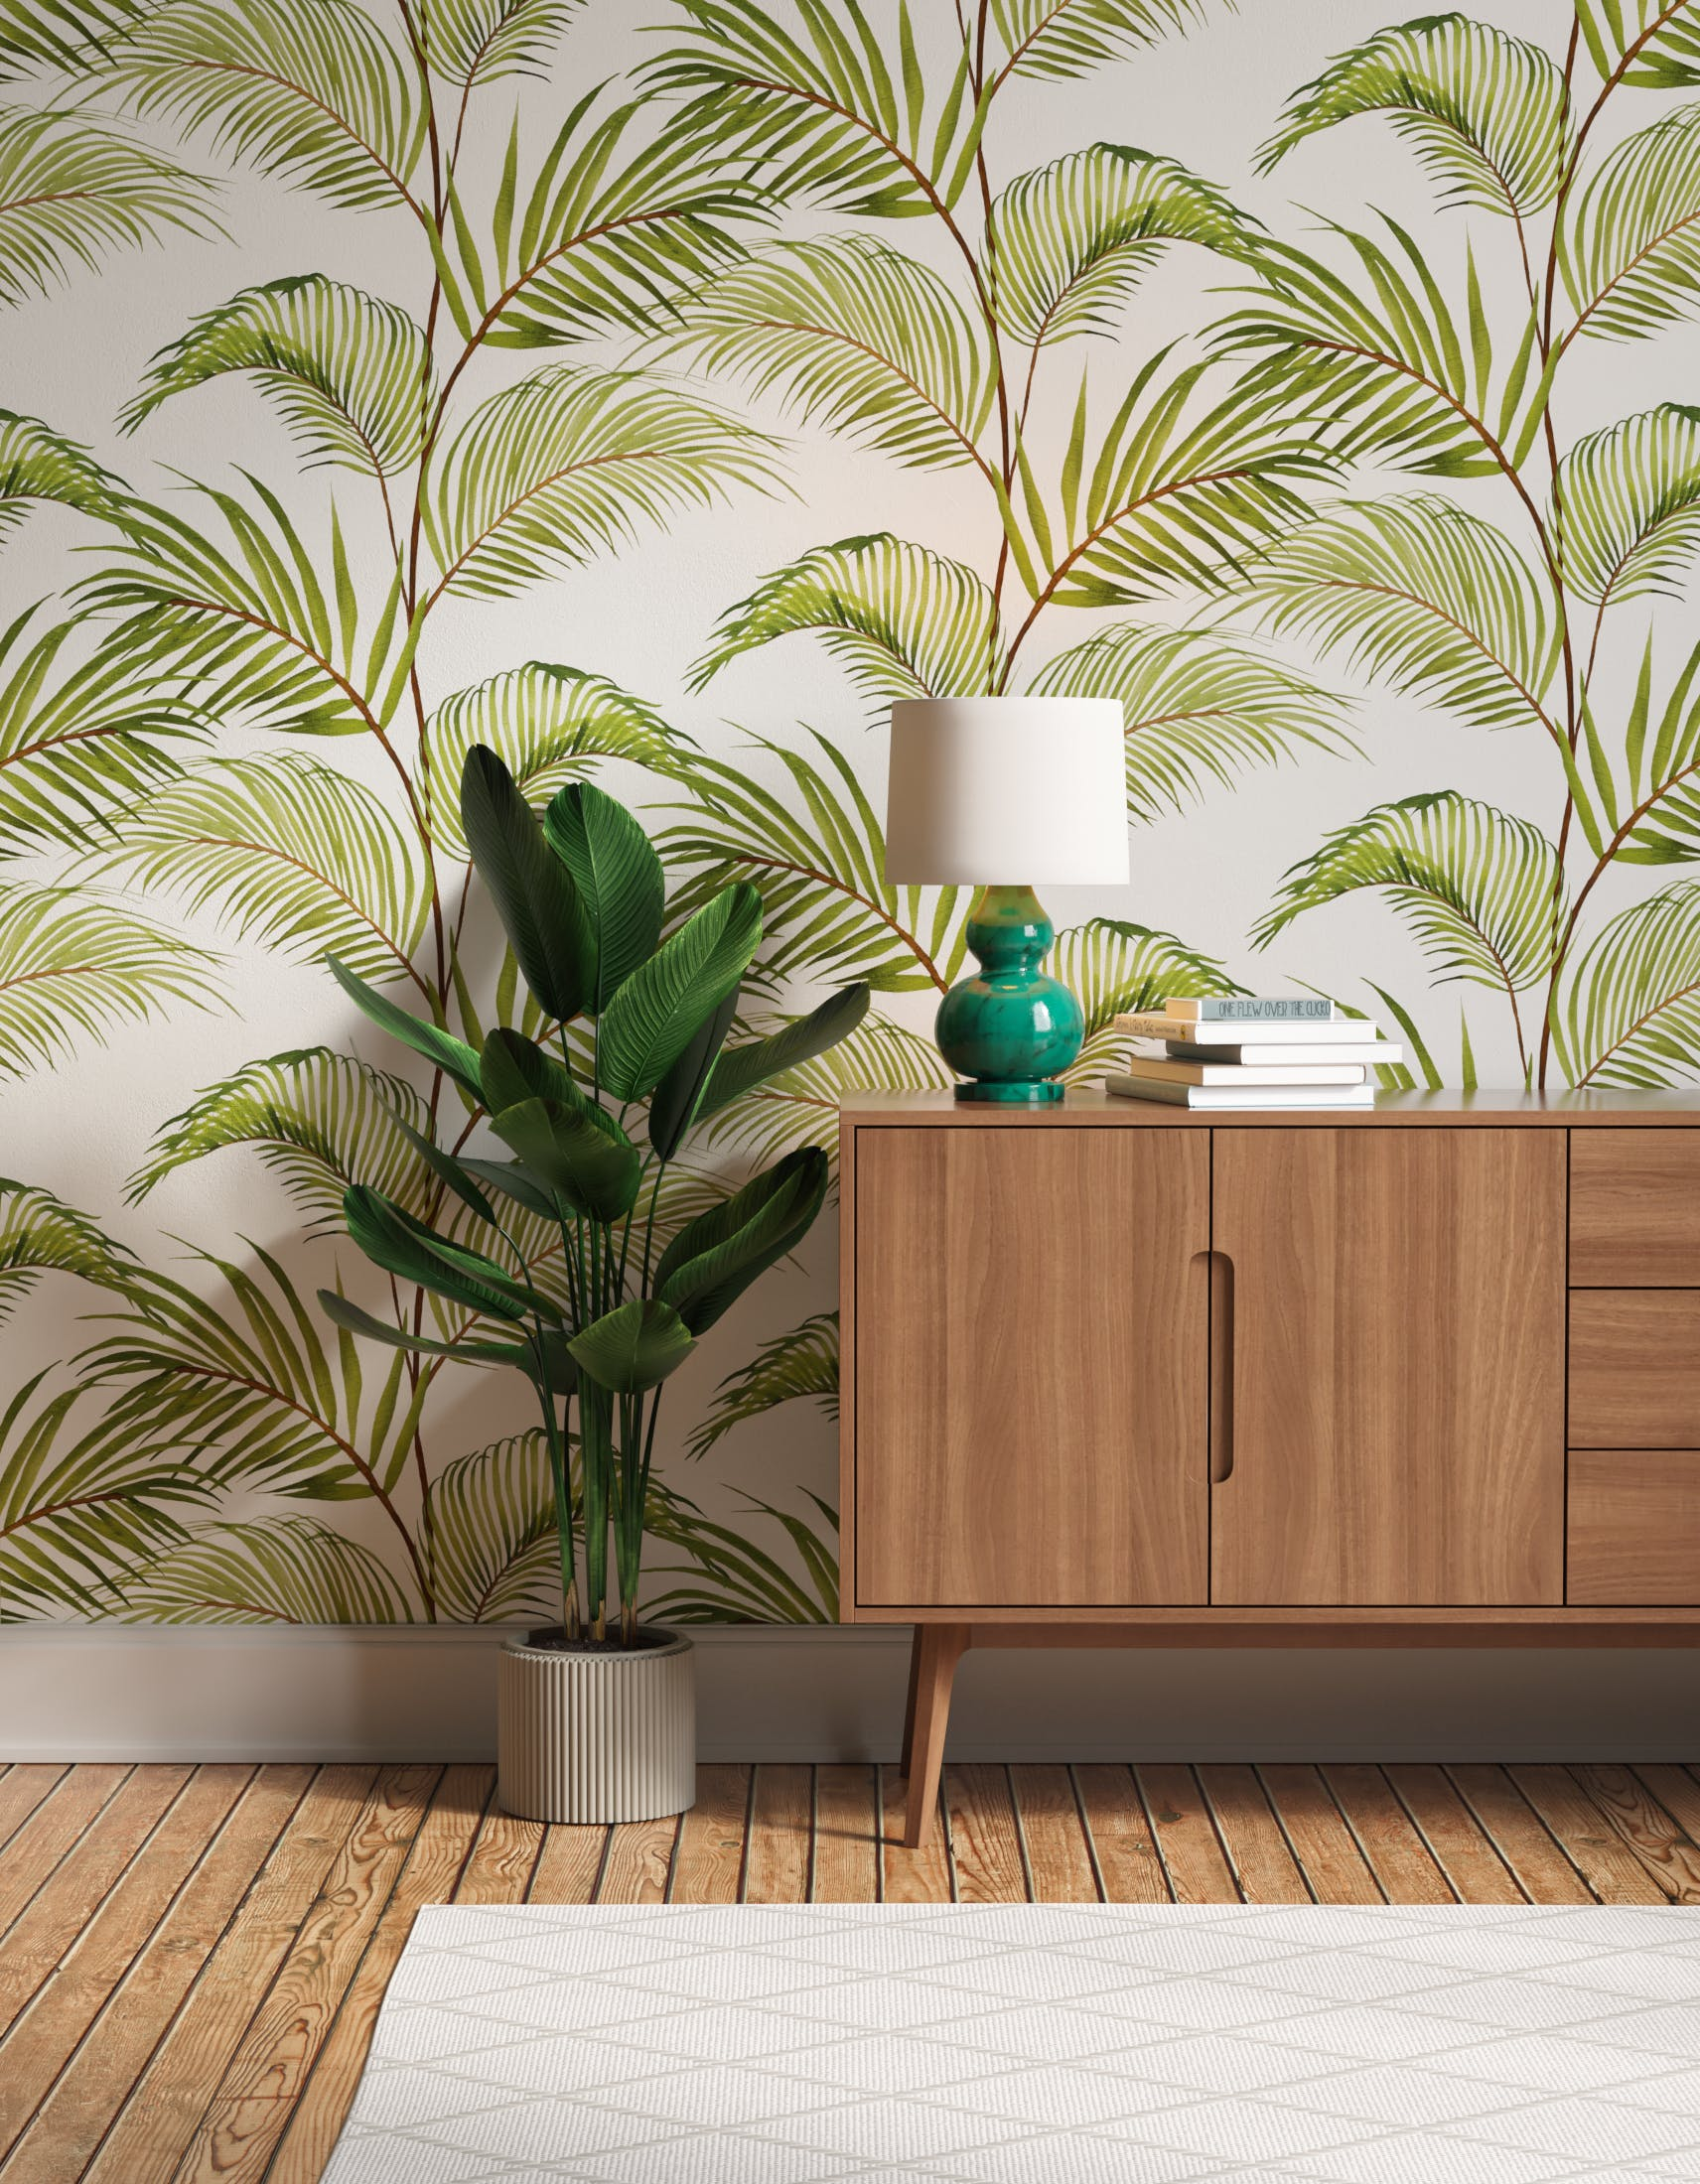 Hallway decorated with Lick x Belinda Bayley Jungle 03 white and green palm leaf wallpaper